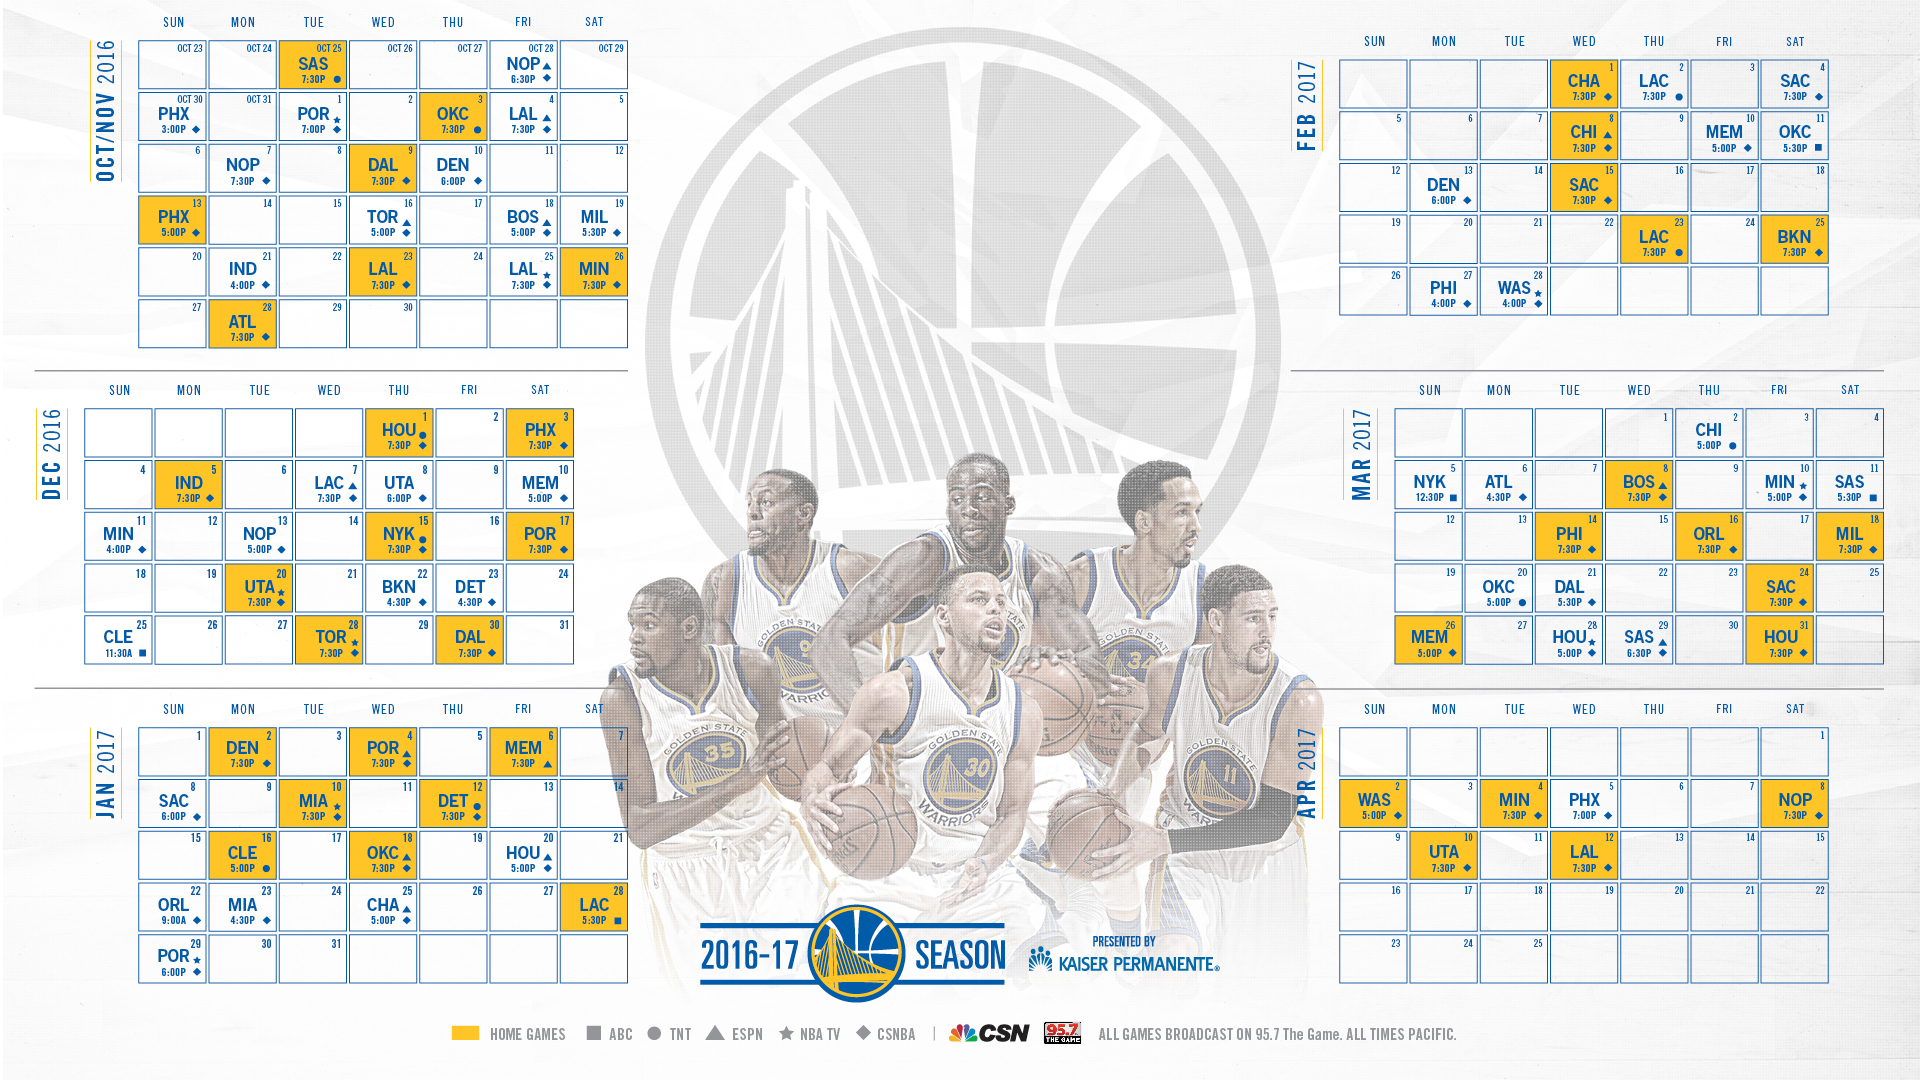 Golden-State-Warriors-Images-Photos-Pictures-Backgrounds-wallpaper-wpc5805461